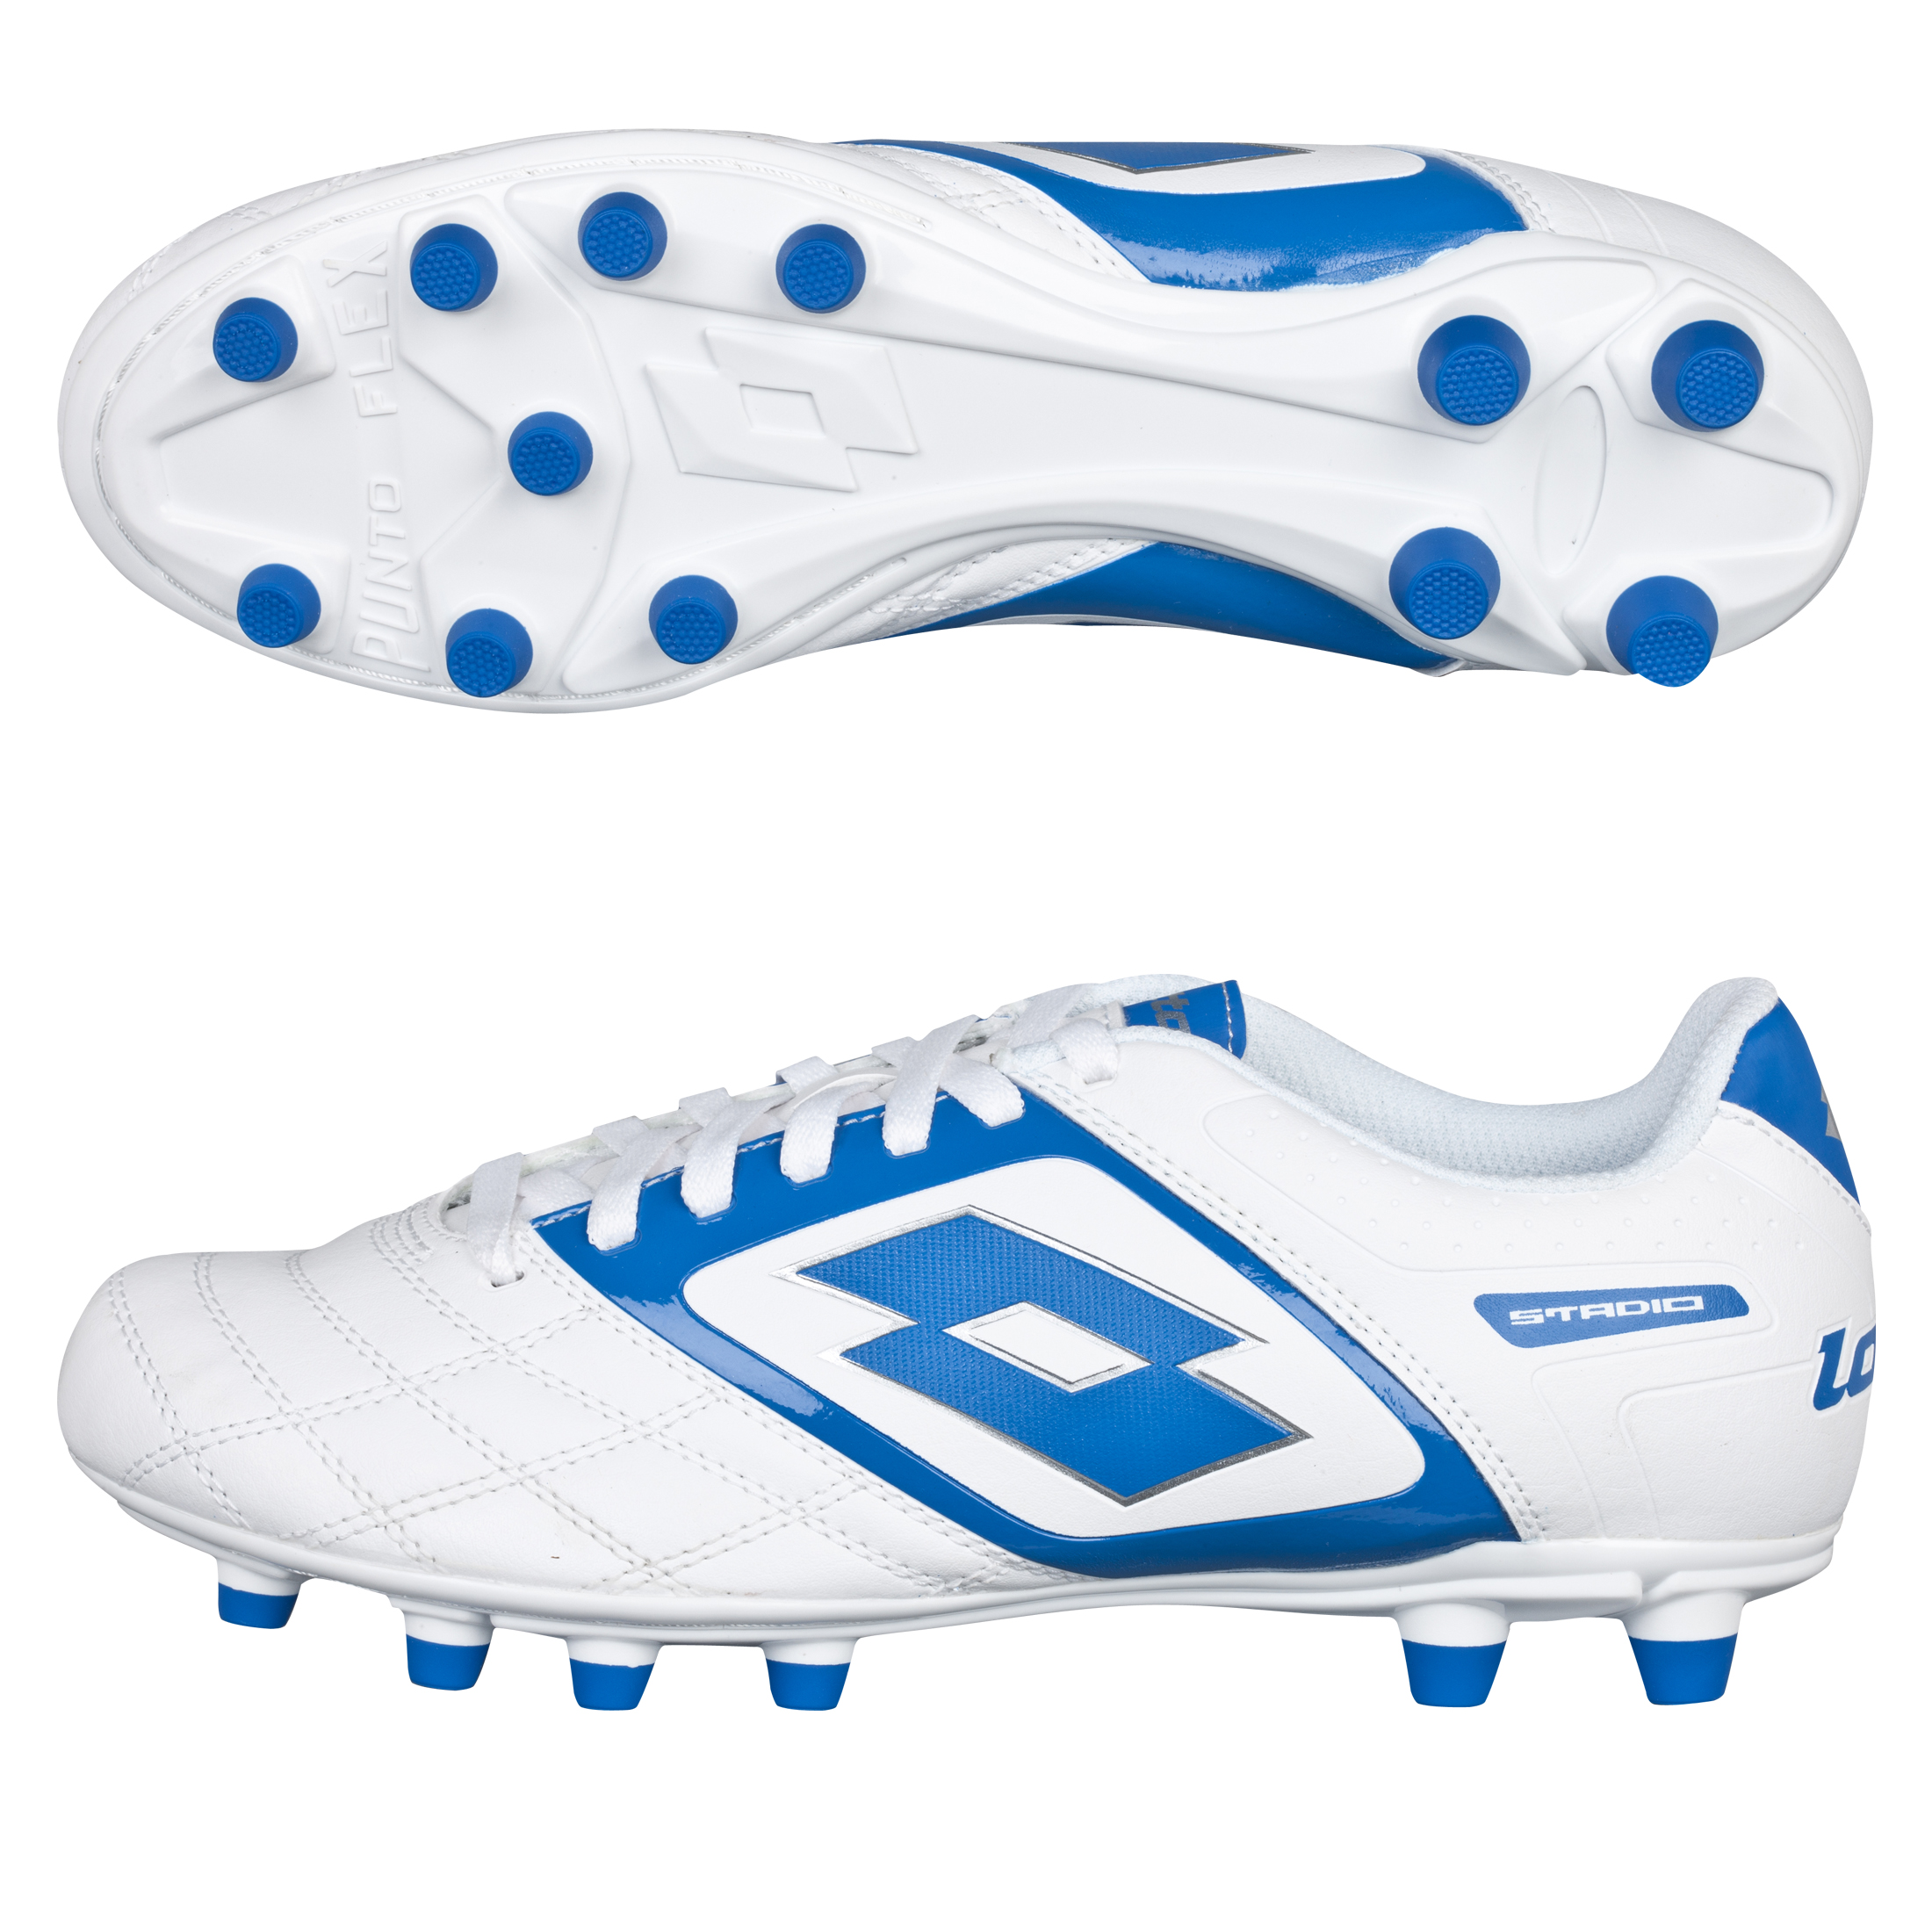 Lotto Stadio Potenza II 700 Firm Ground Football Boots - White/Blue